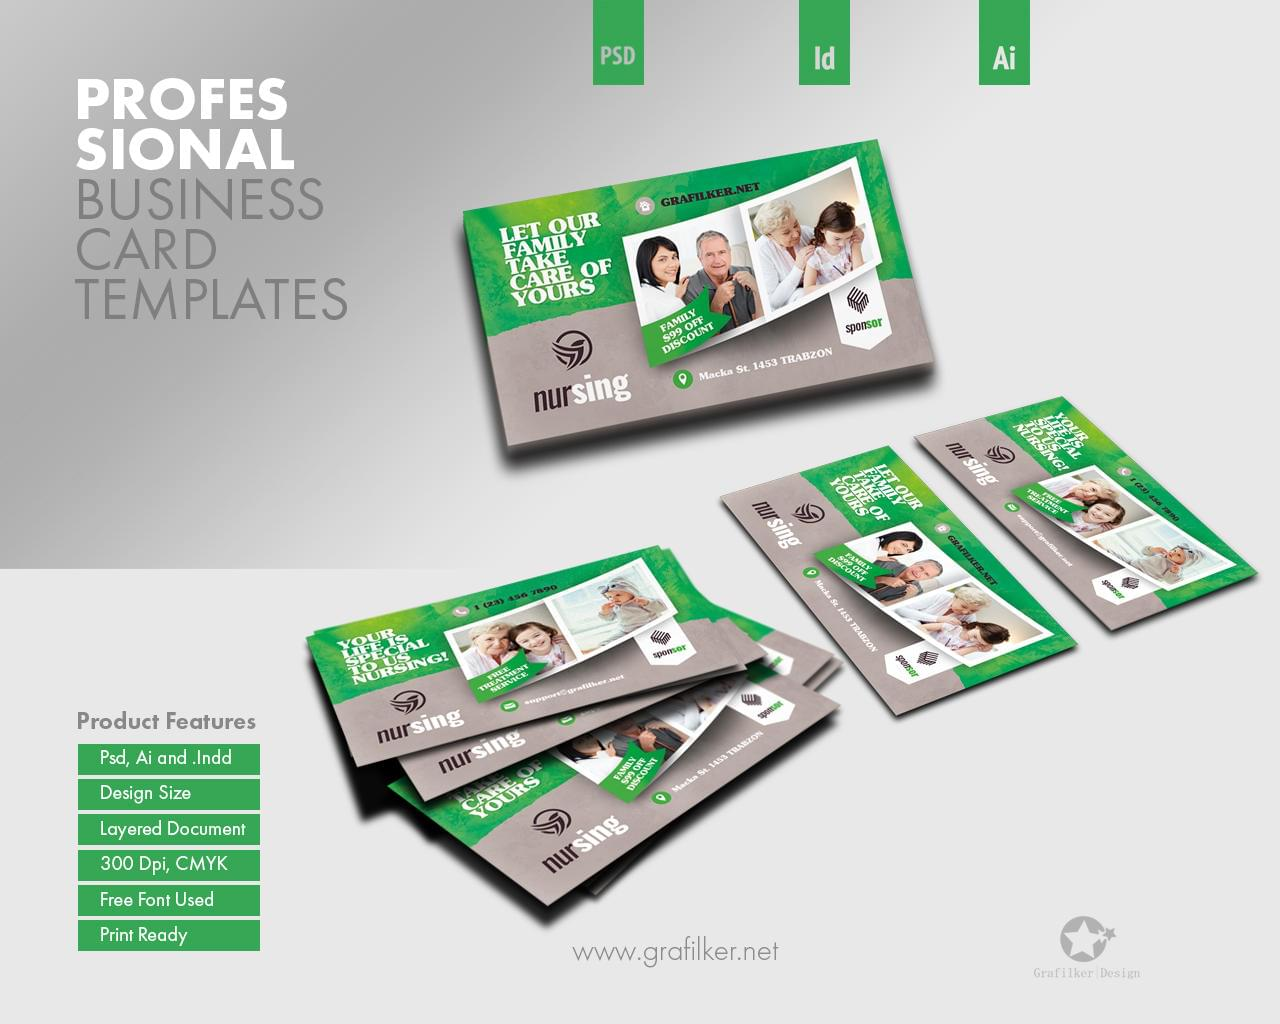 Professional business card templates by grafilker on envato studio professional business card templates cheaphphosting Choice Image